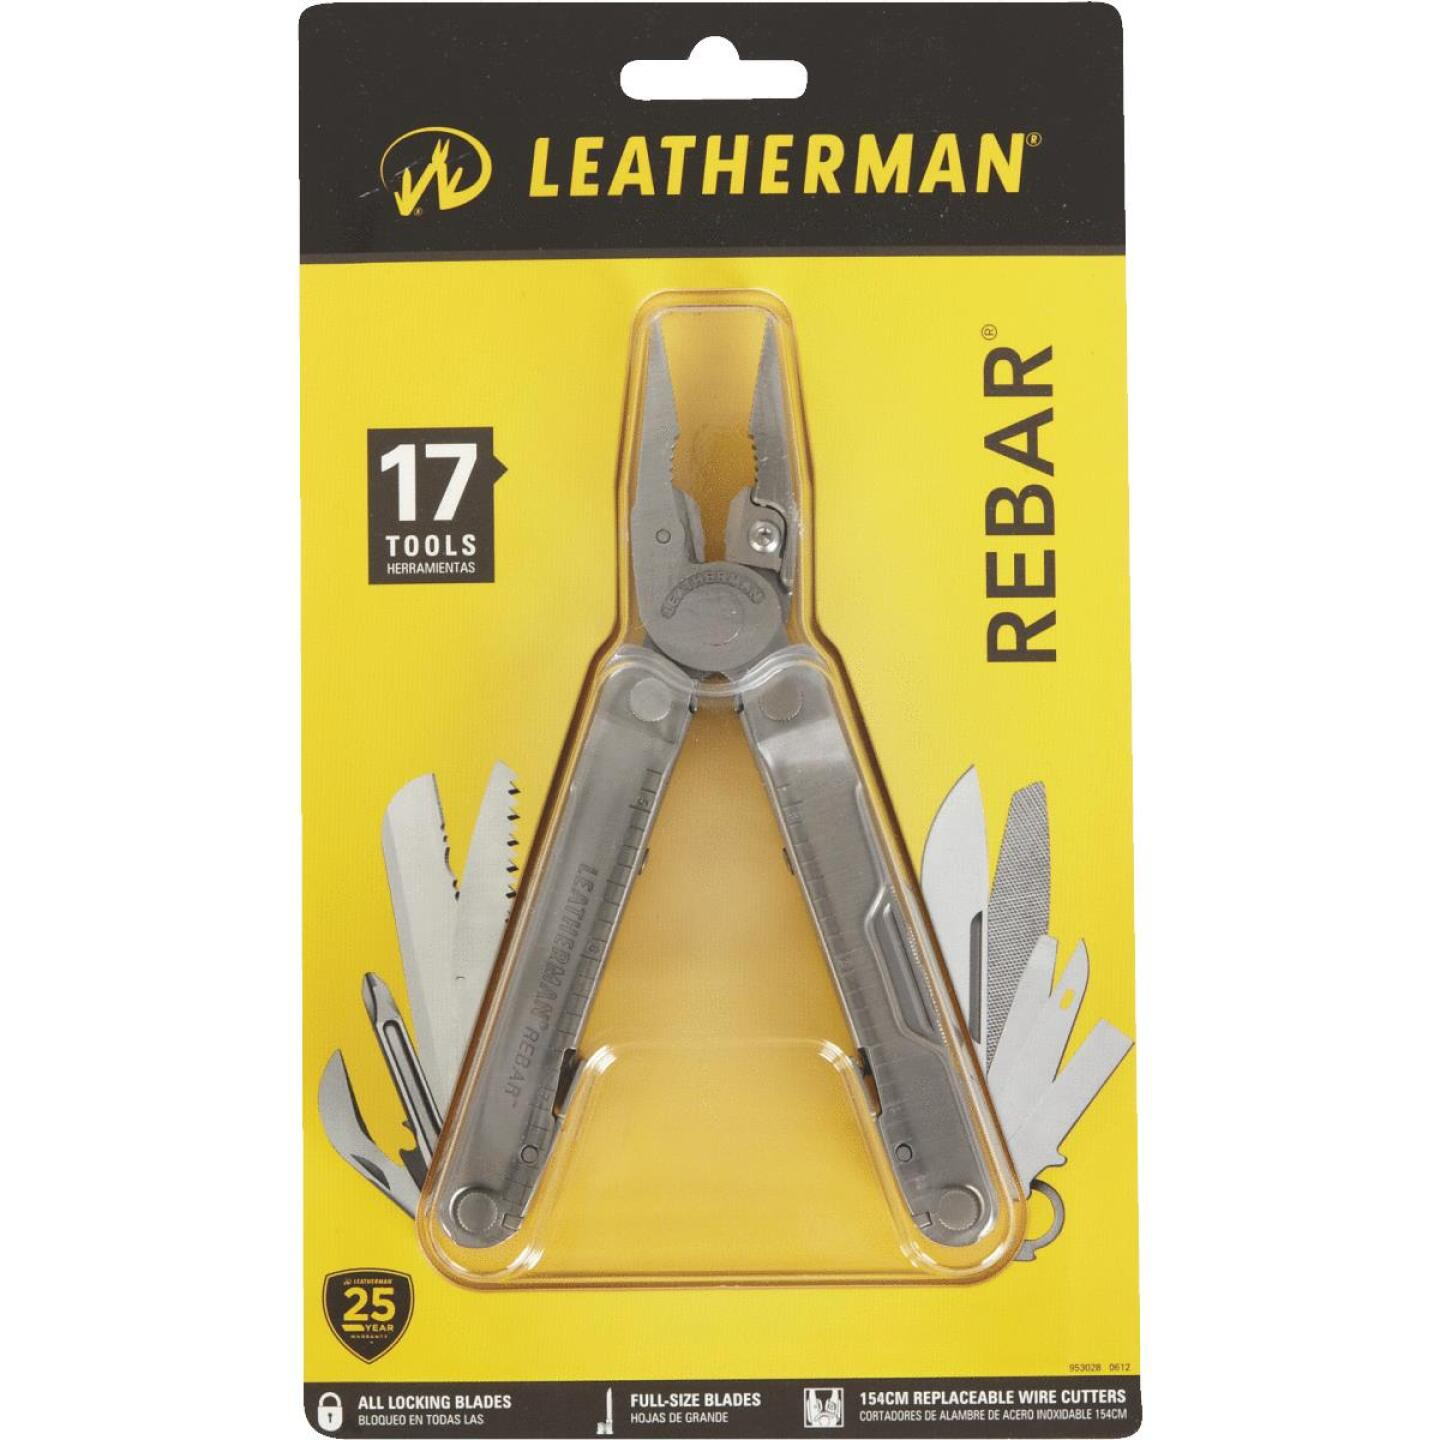 Leatherman Rebar 17-In-1 Stainless Steel Multi-Tool Image 2